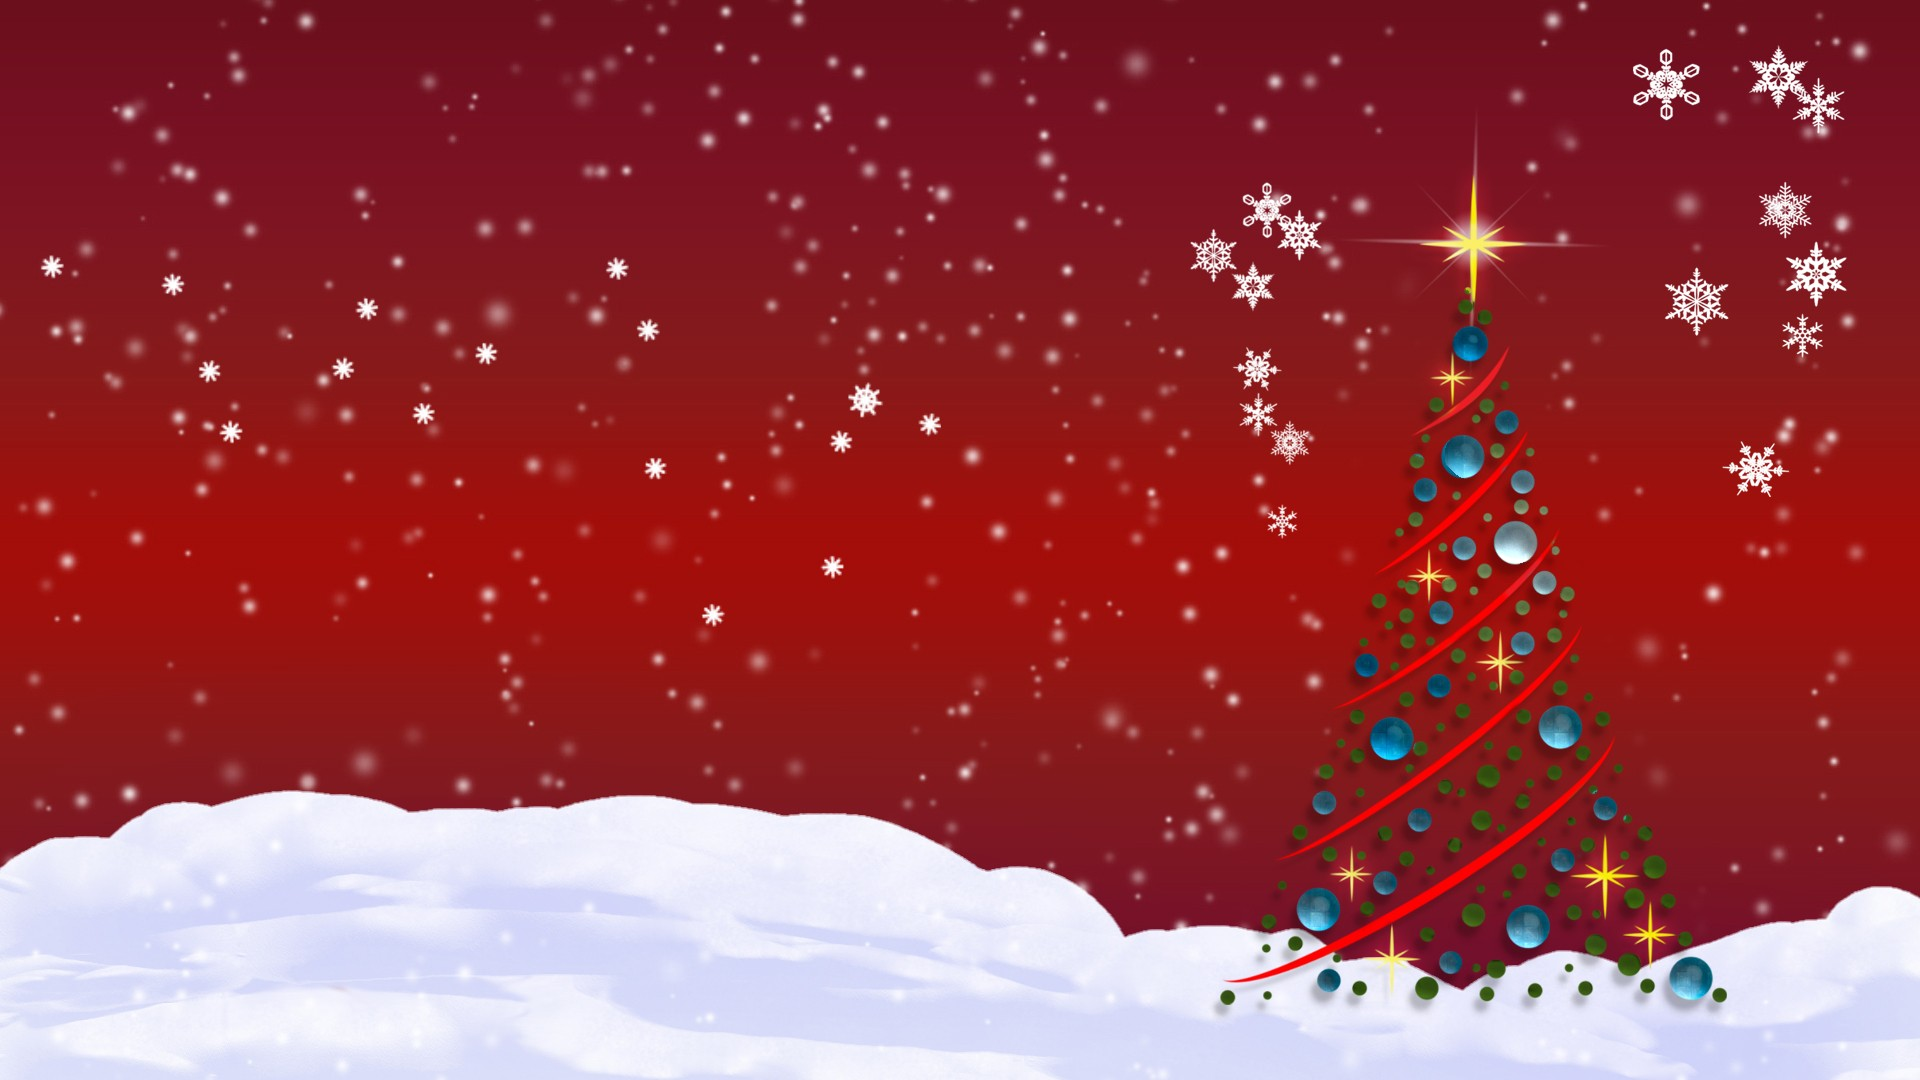 Free Download Christmas Wallpapers And Screensavers For Mac